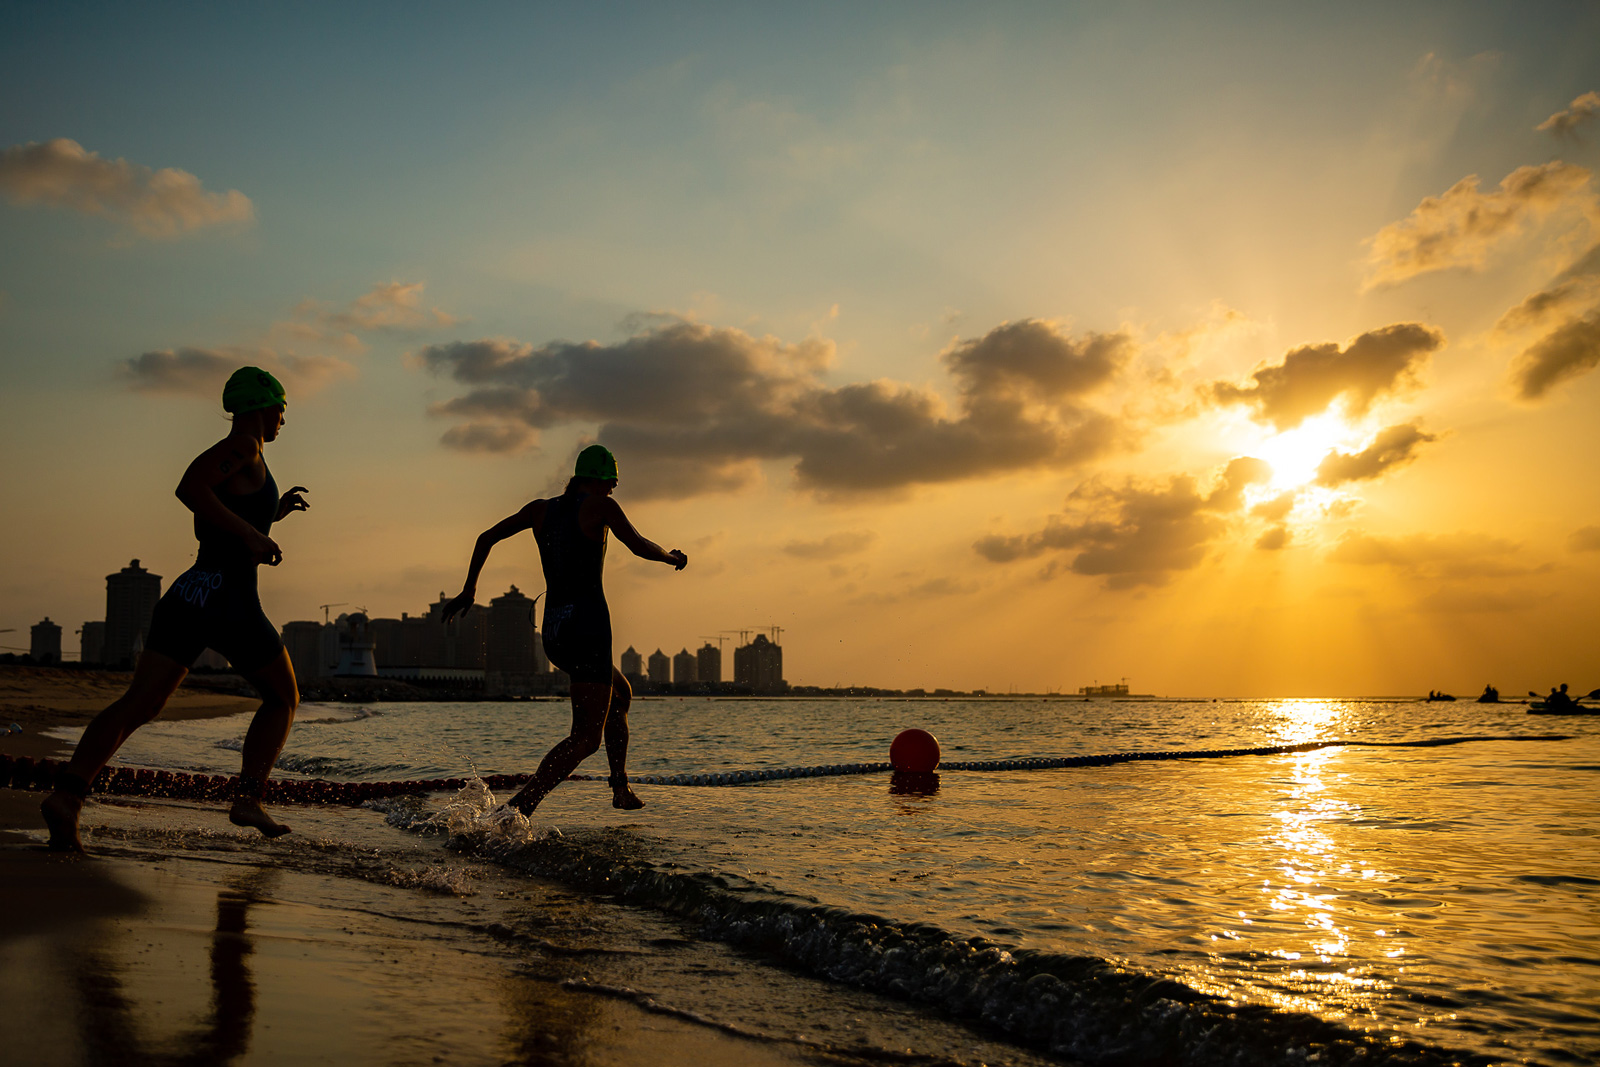 Qatar National Triathlon Series 2019/2020 starts with Katara Triathlon on November 8th